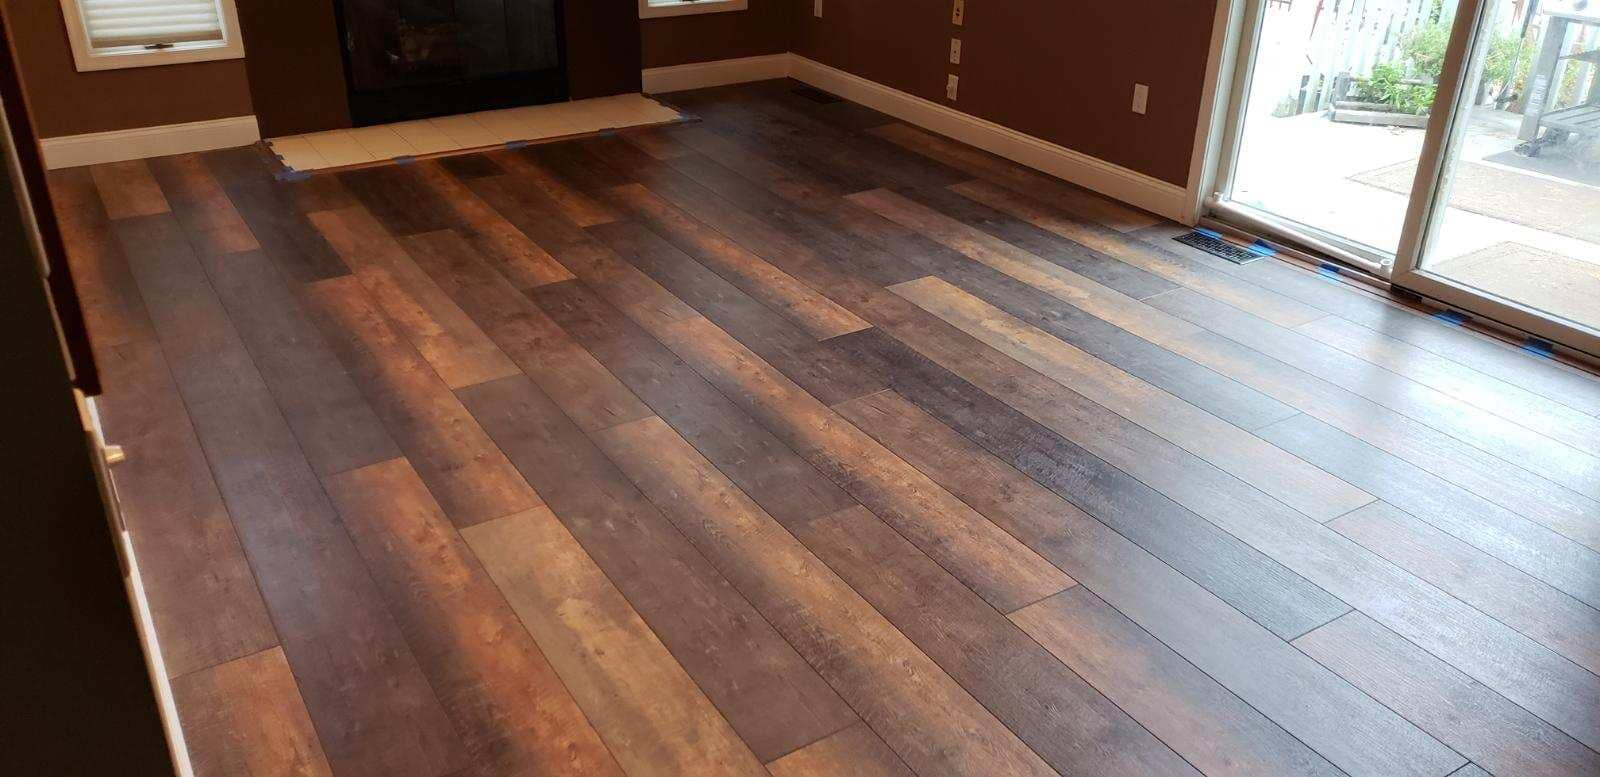 Shaw Floorte Luxury Vinyl Plank flooring in style Titan that we installed in this living room remodel in Howell, New Jersey